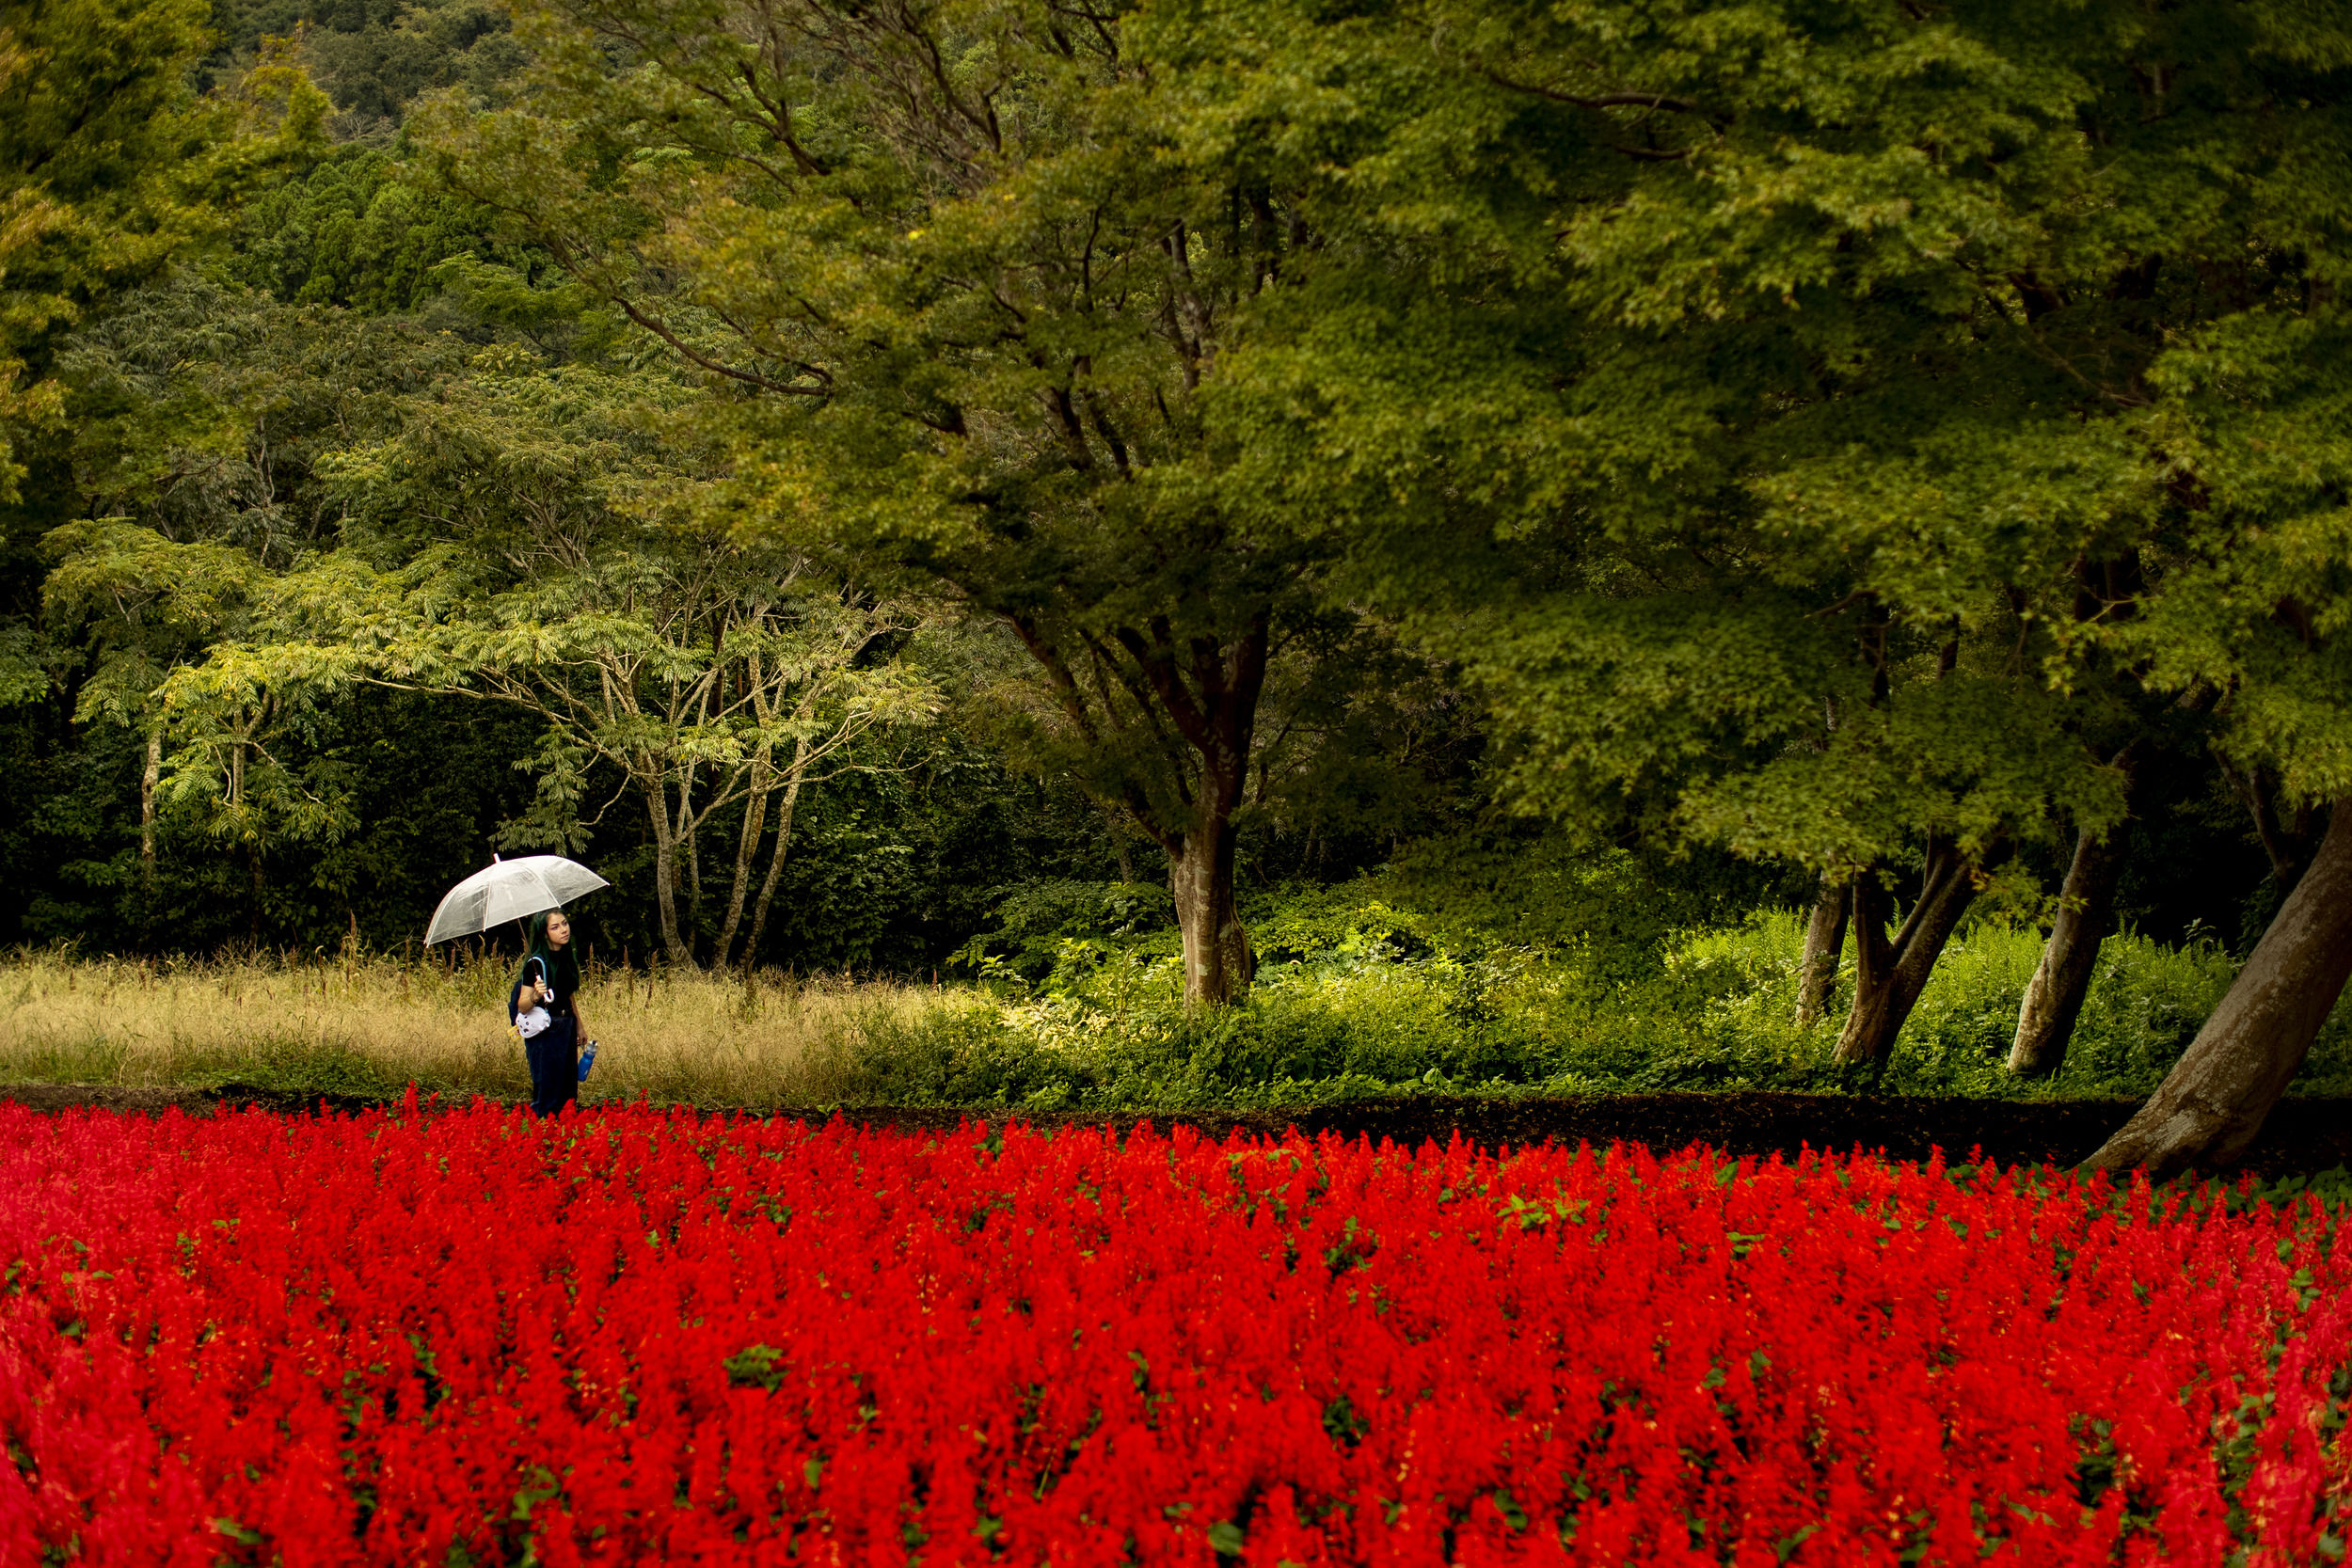 A person holding an umbrella and walking through a field of red flowers in the Japanese countryside.